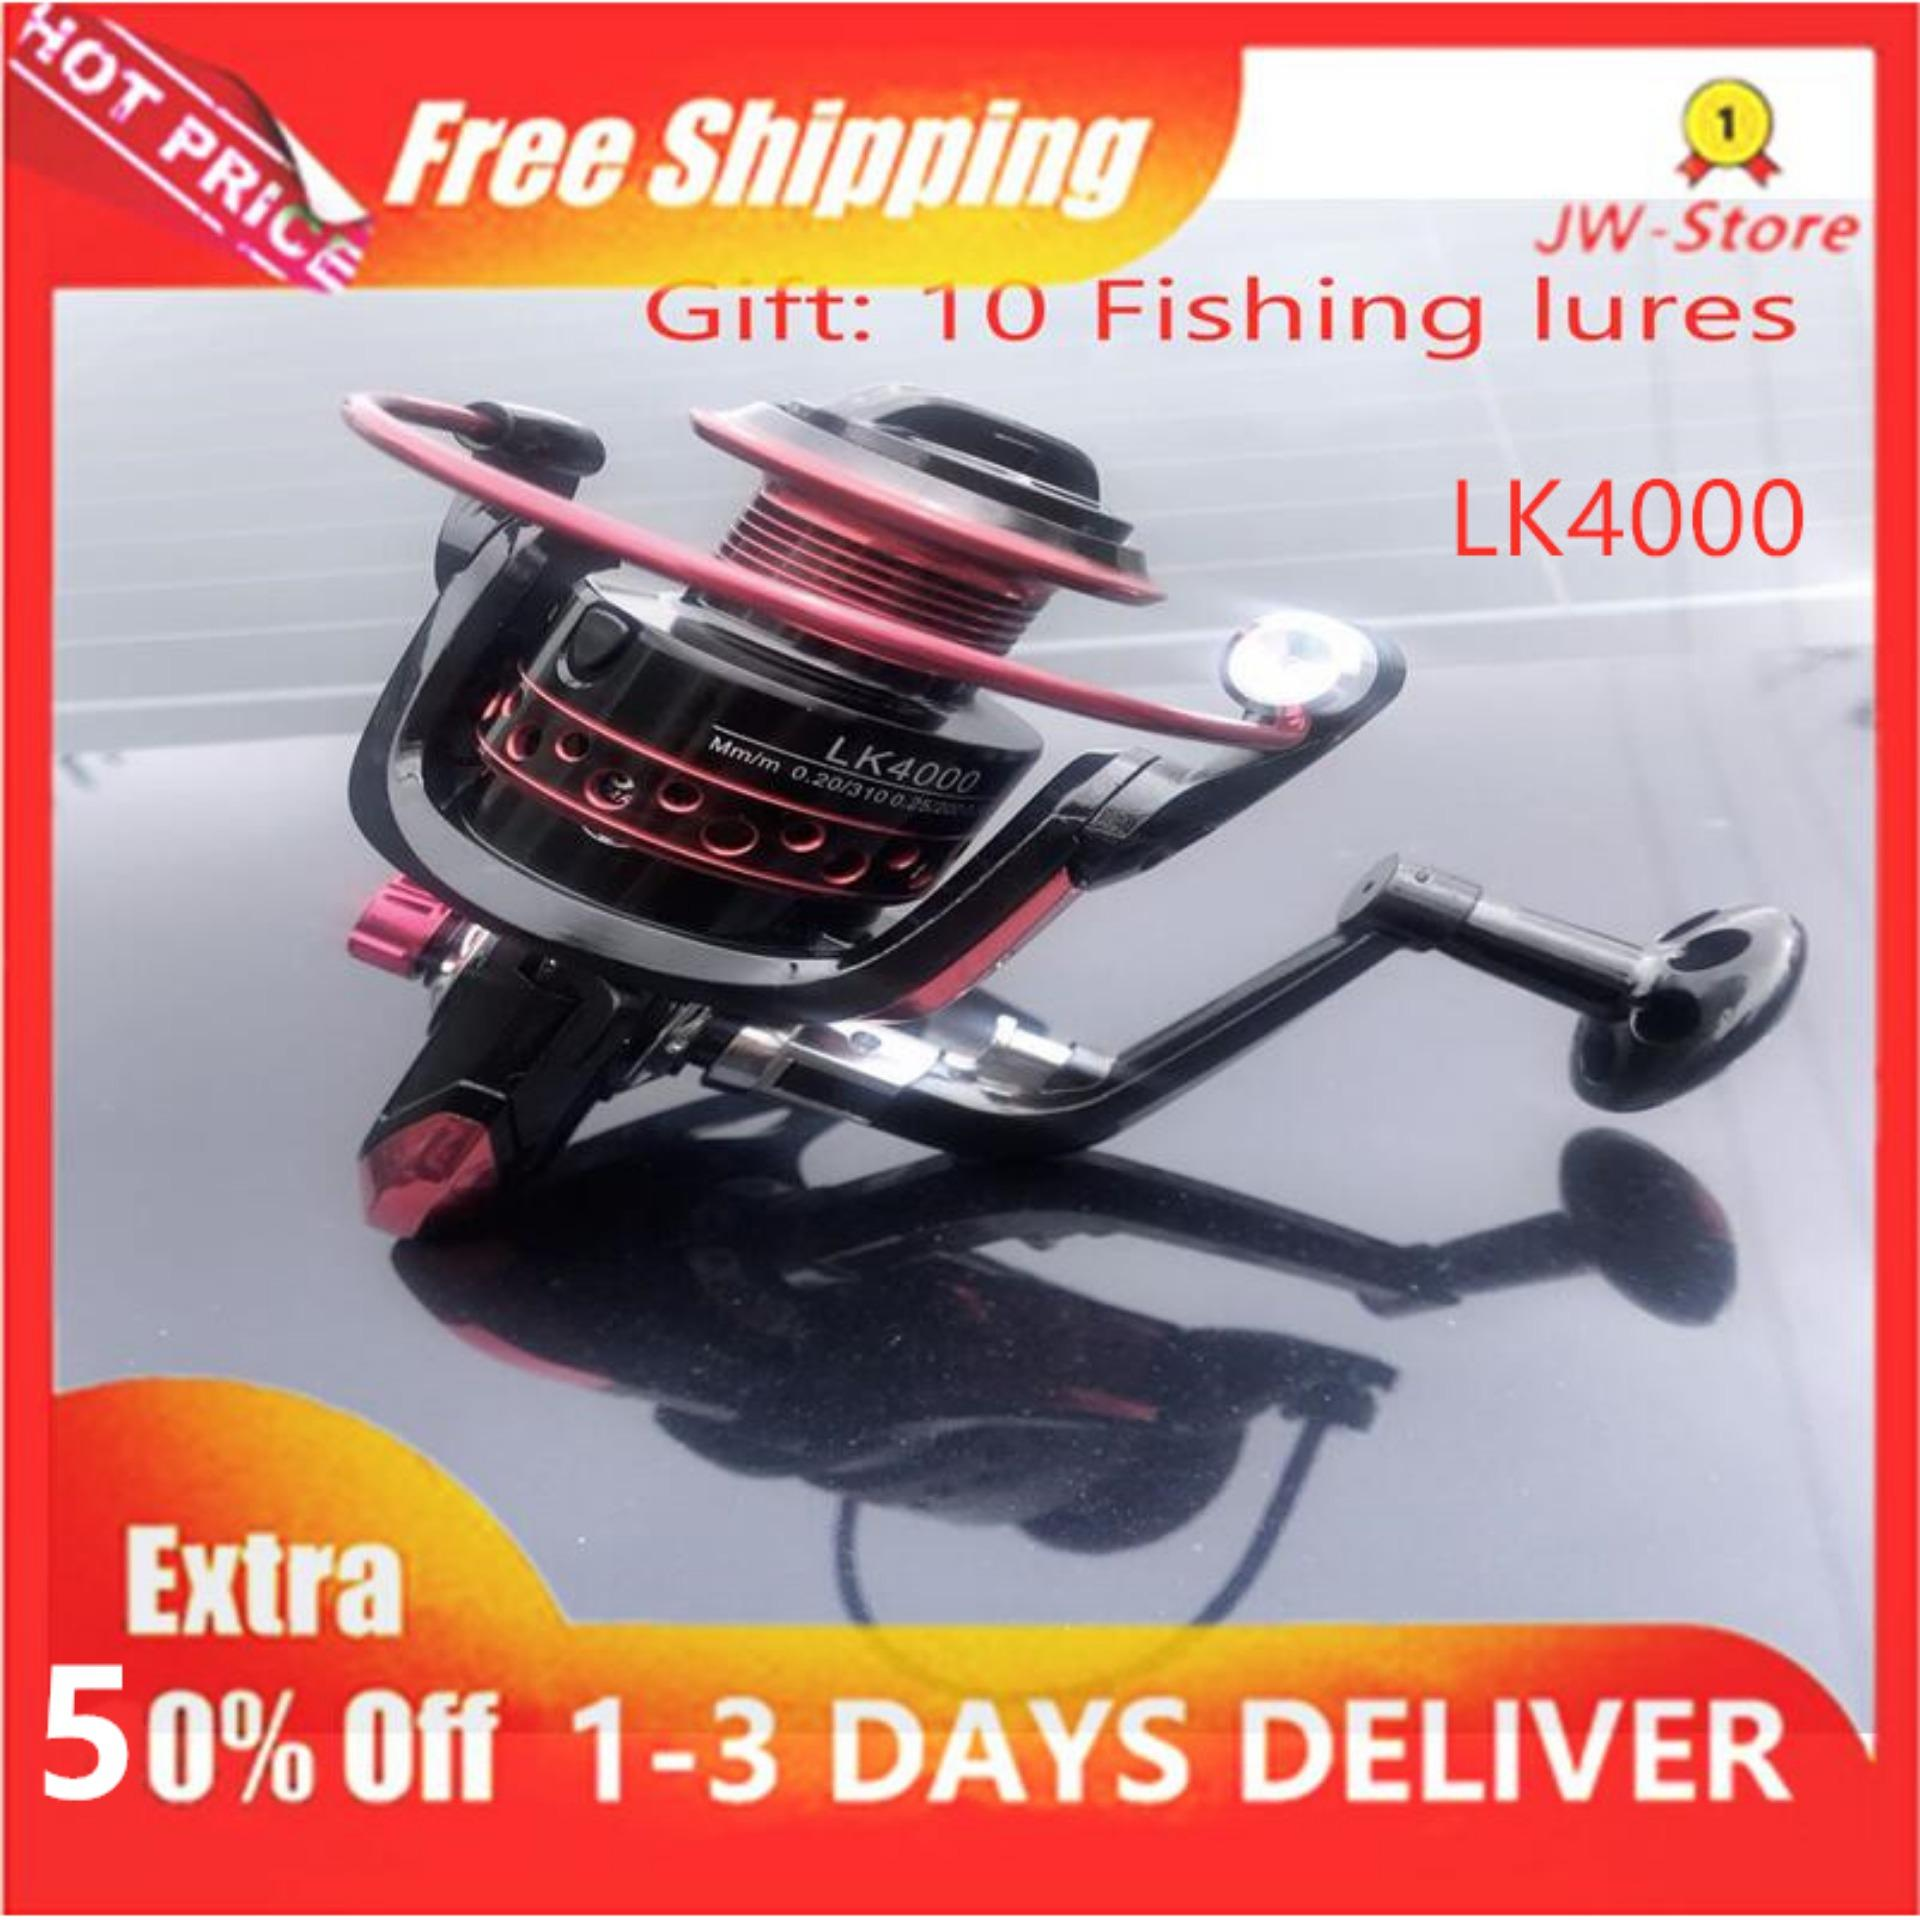 Reels for sale - Fishing Reels Online Deals & Prices in